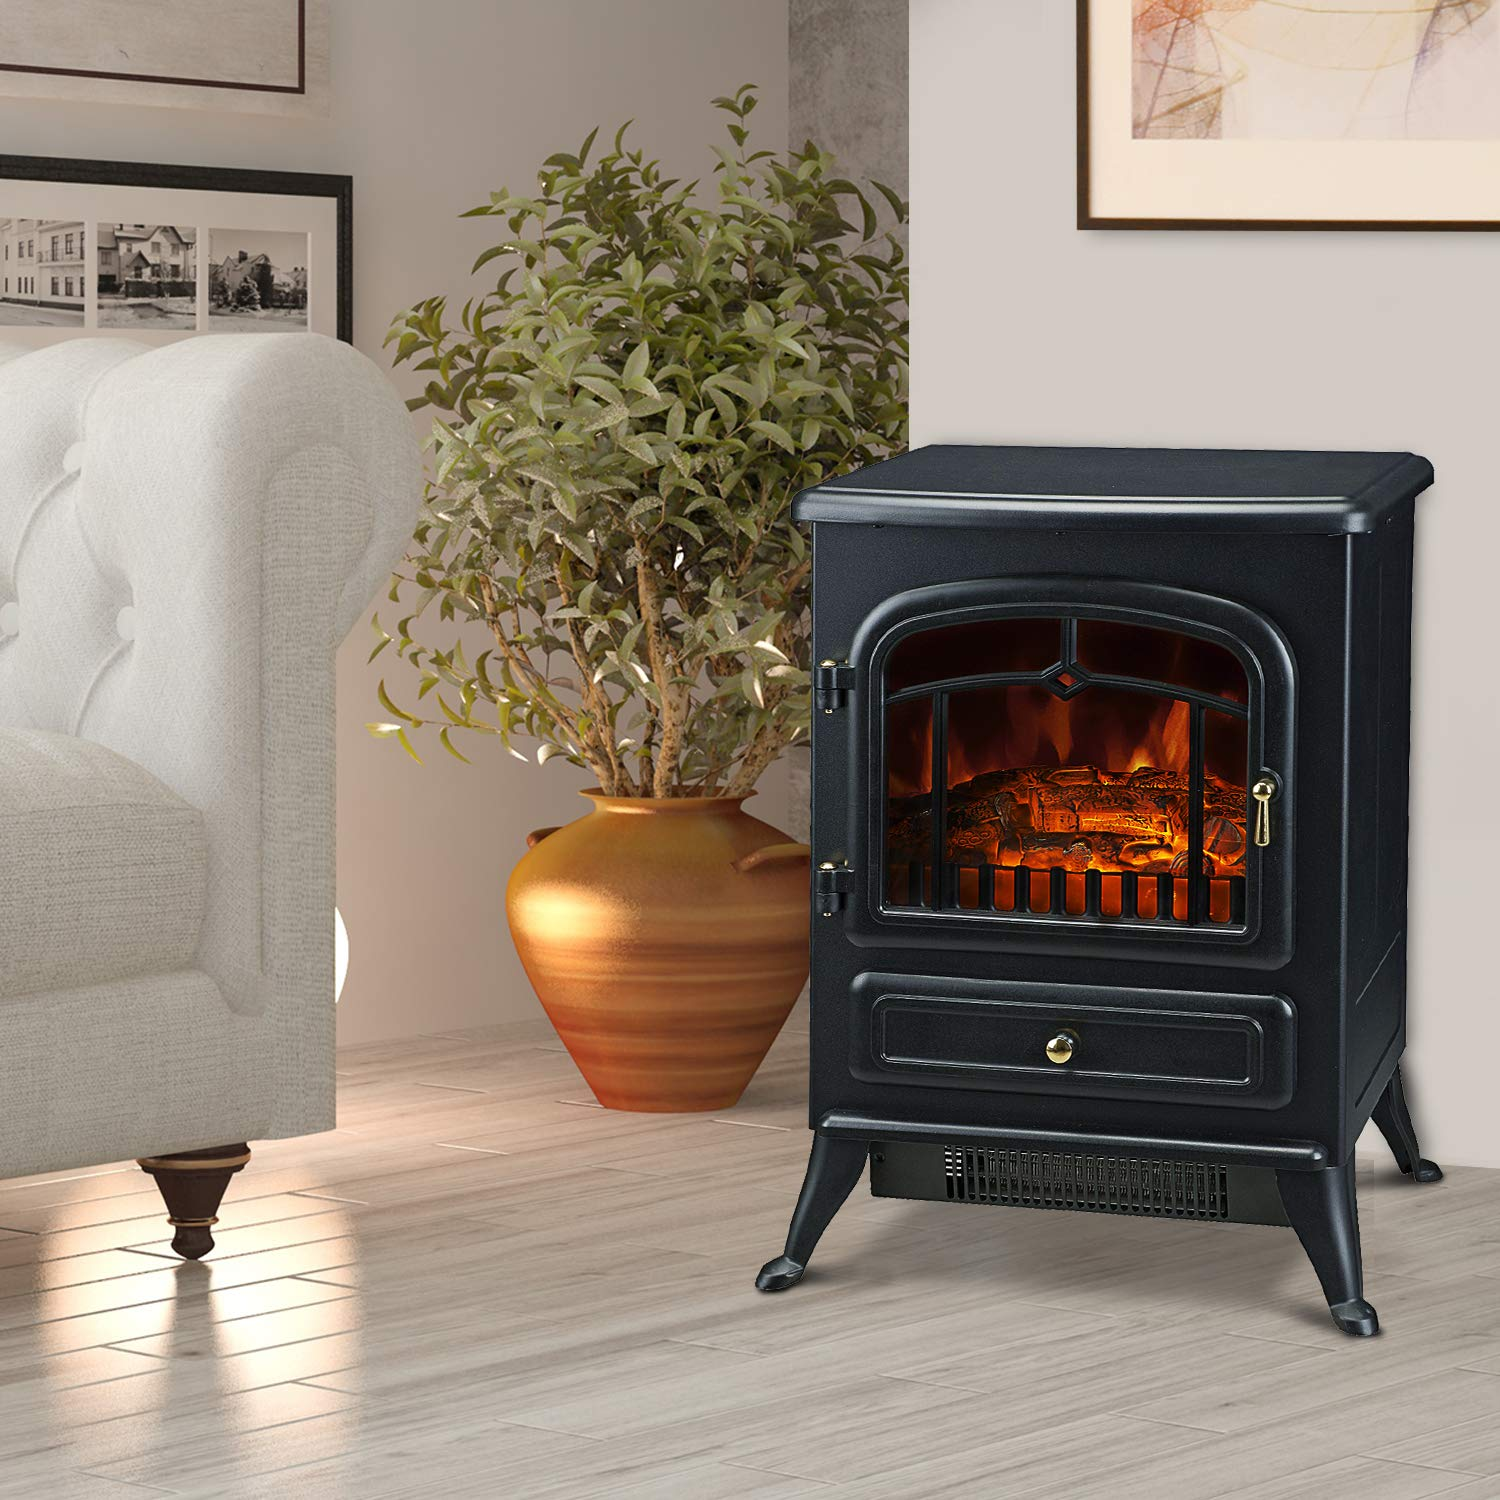 HOMCOM 21-inch H 1500W Compact Freestanding Electric Wood Stove Fireplace Heater With Realistic Flames, Black